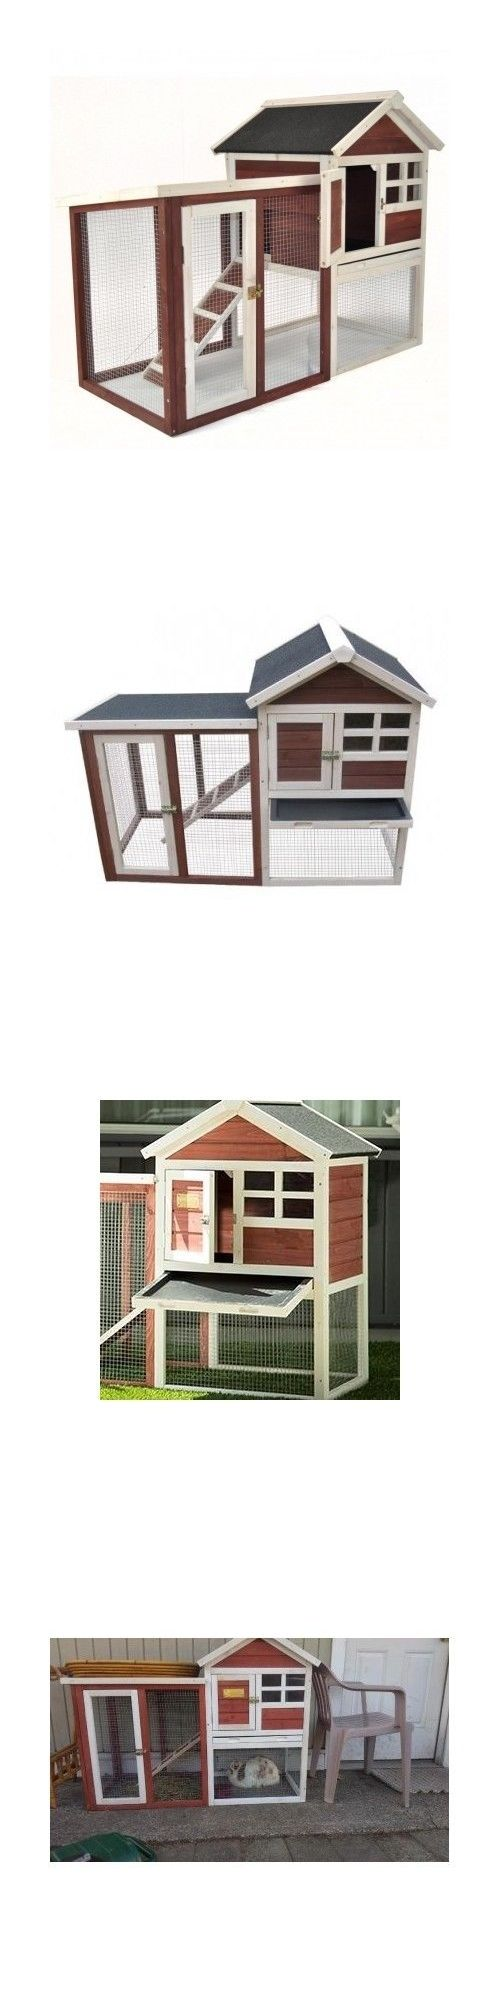 Backyard Poultry Supplies 177801: Chicken Coop Hen House Rabbit Bird Pet Bunny Hutch Cage Nesting Box Ramp Fence BUY IT NOW ONLY: $129.95